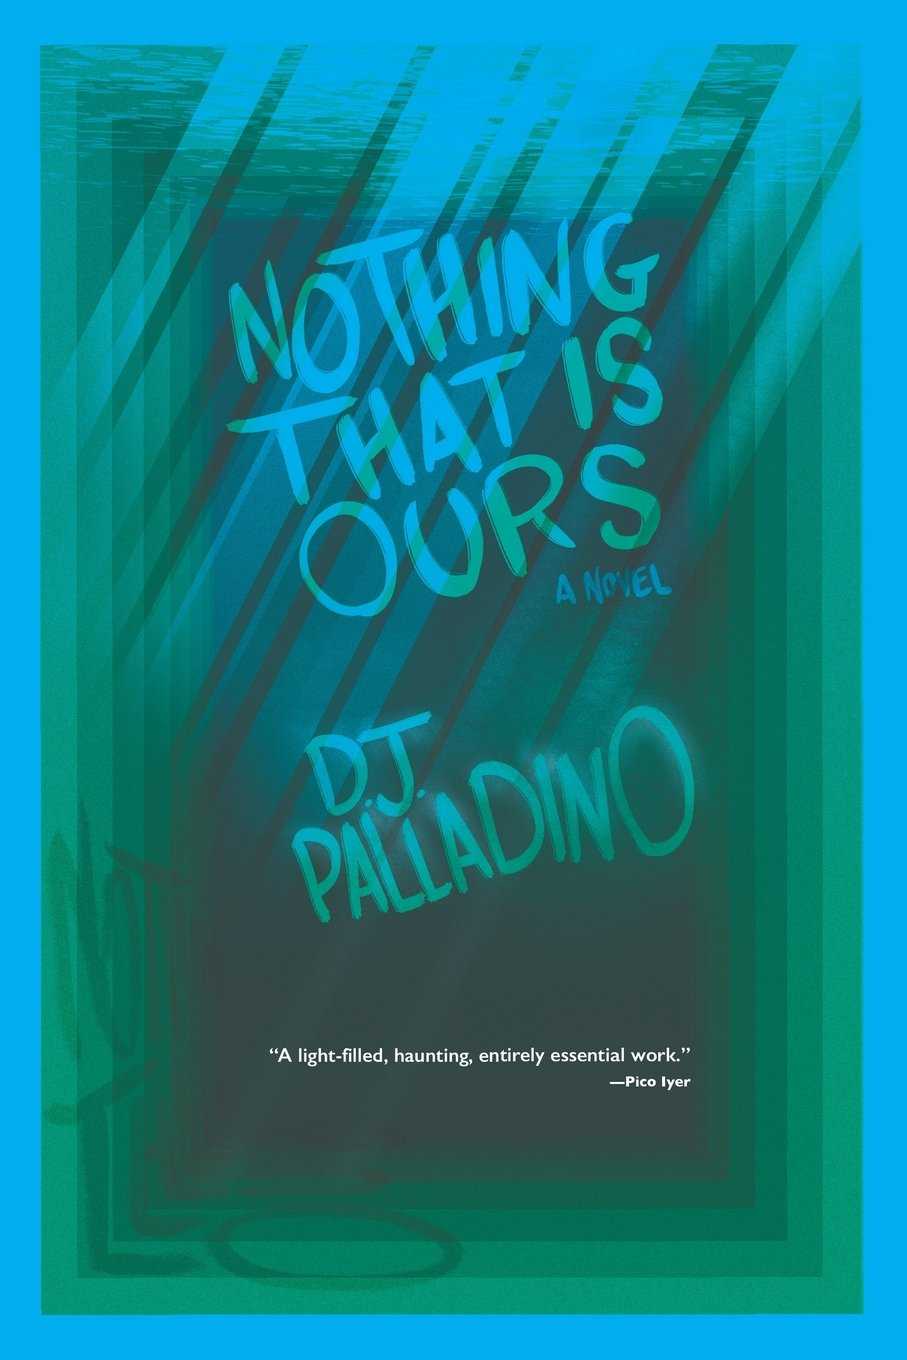 Amazon.com: Nothing That Is Ours (9781940412207): D J Palladino: Books